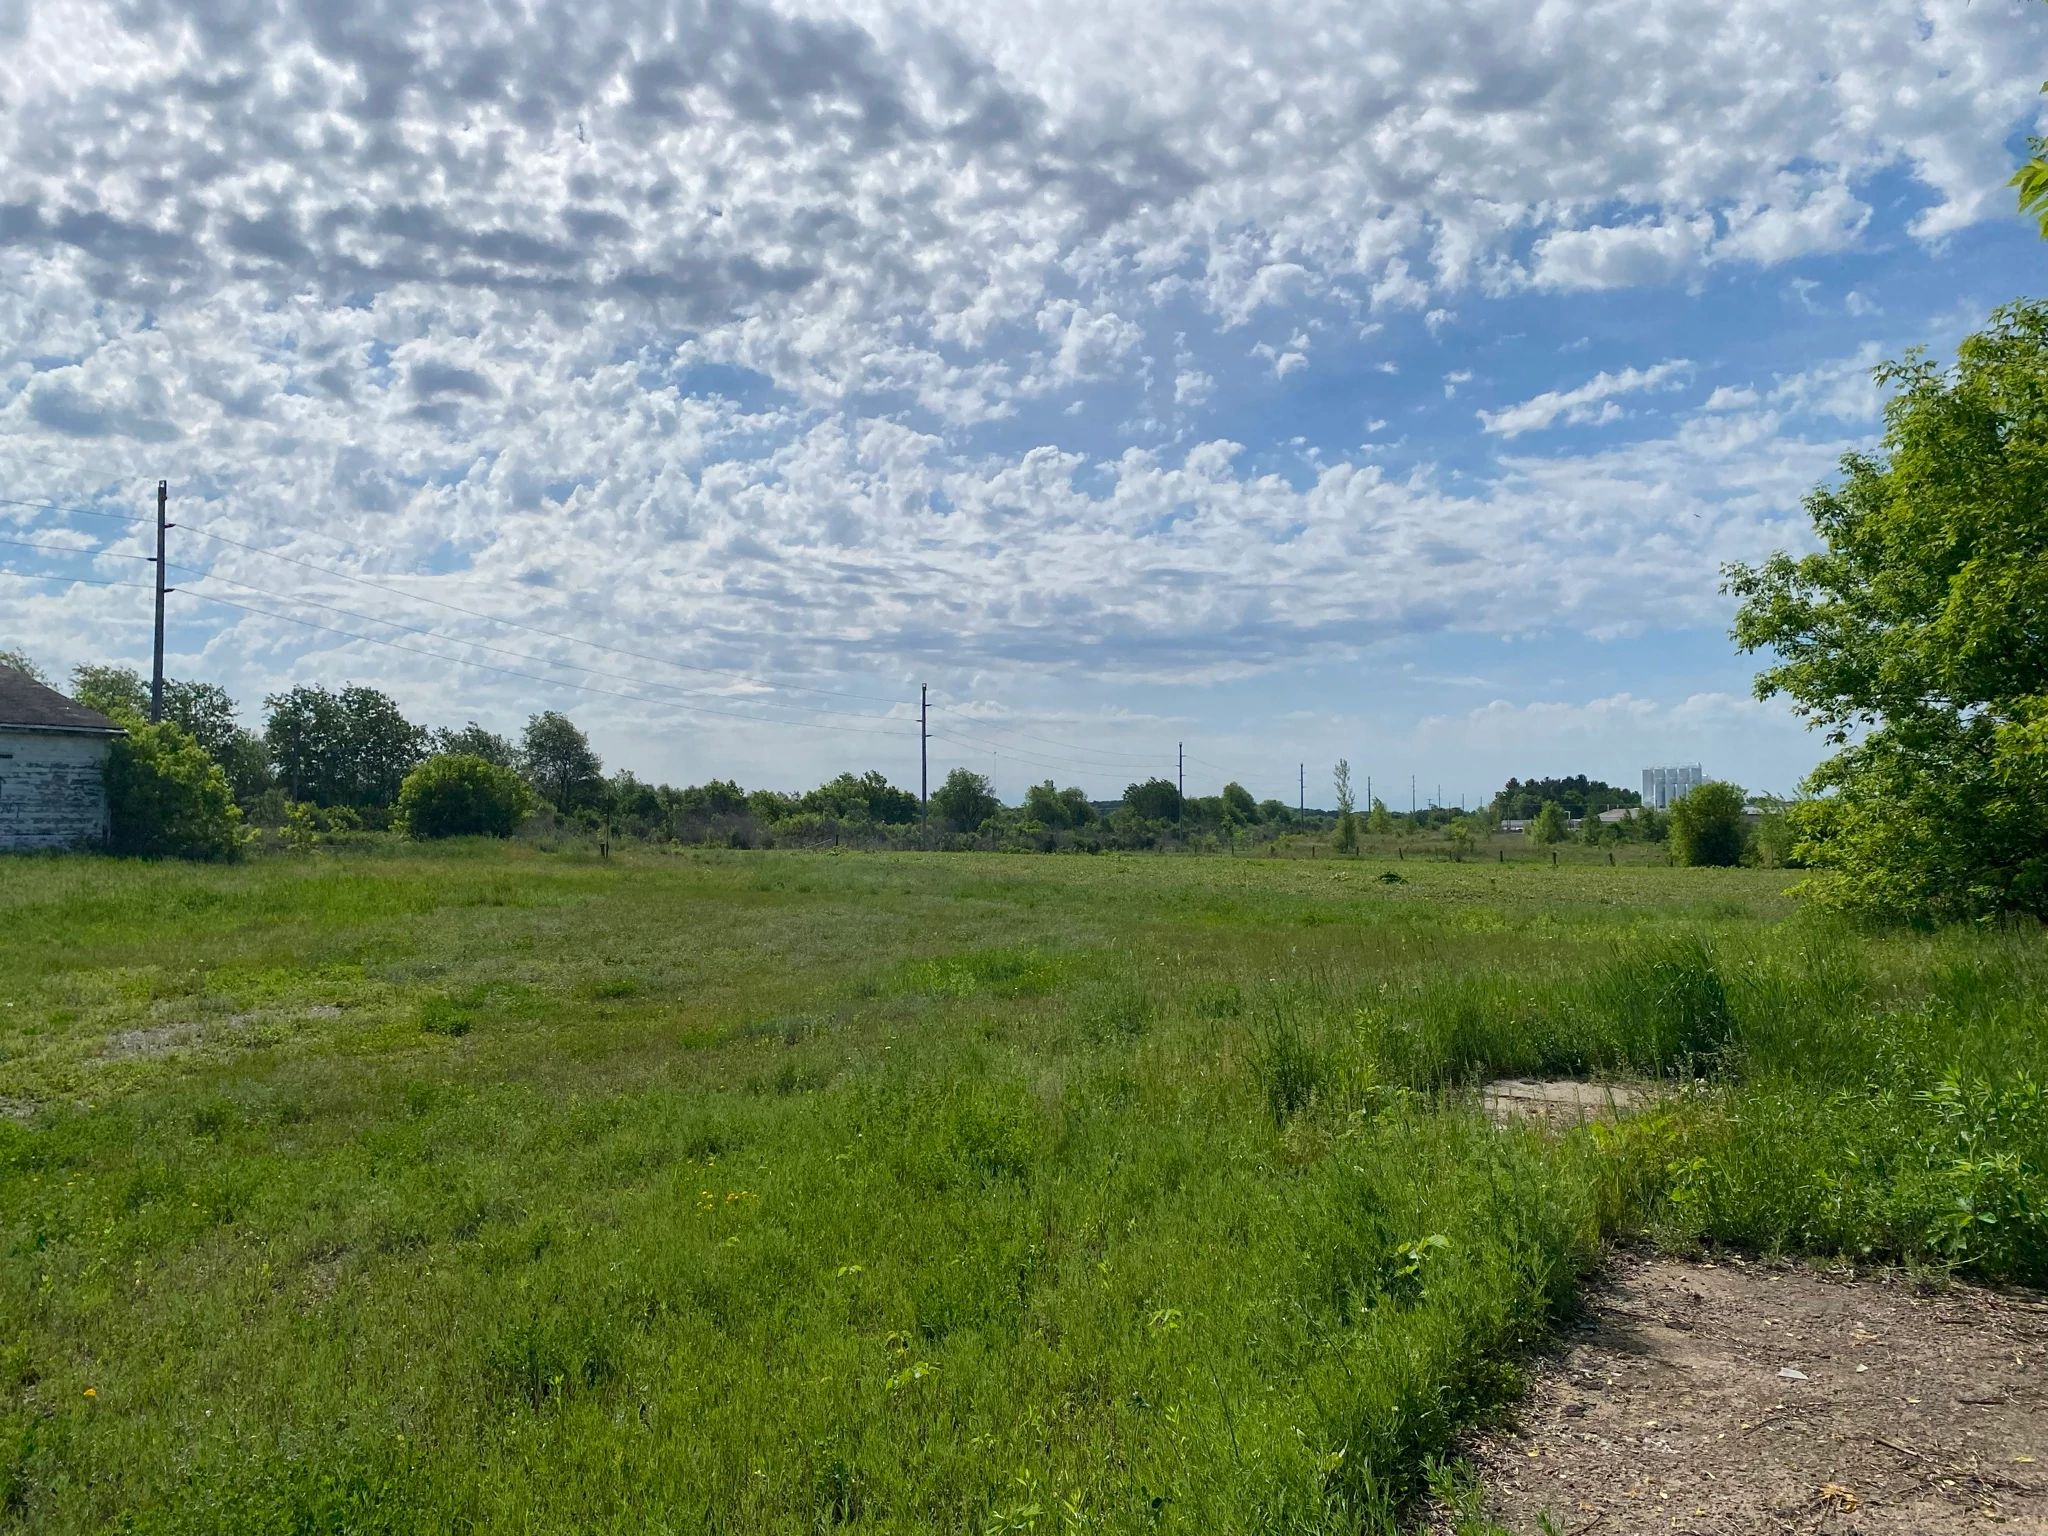 An image of a field in the City of Bloomer.